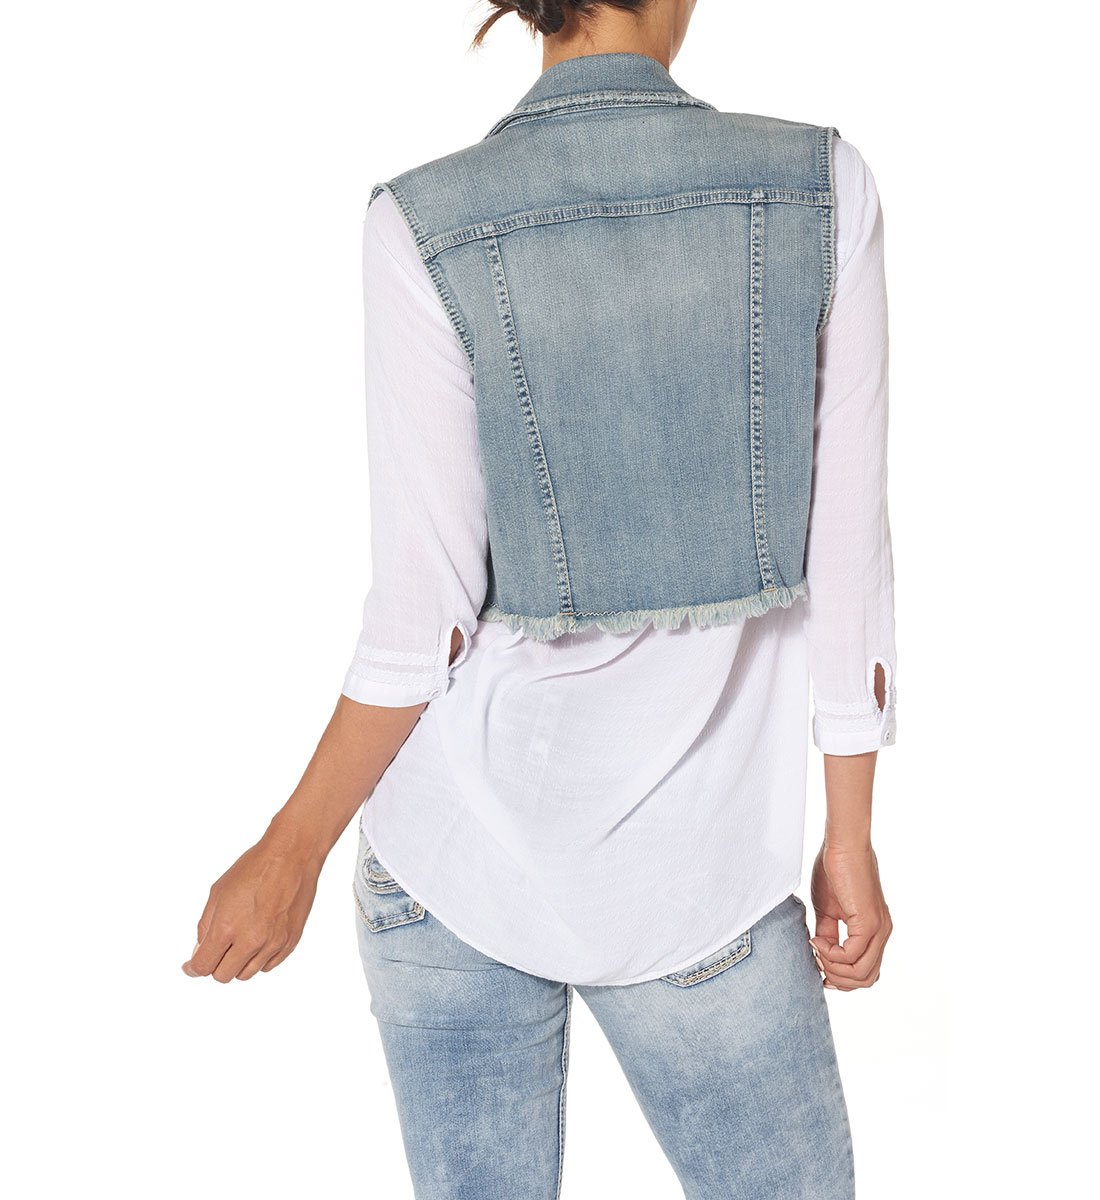 Silver Jeans Women's Cropped Denim Vest with Fray Hem, Indigo, L by Silver Jeans Co. (Image #2)